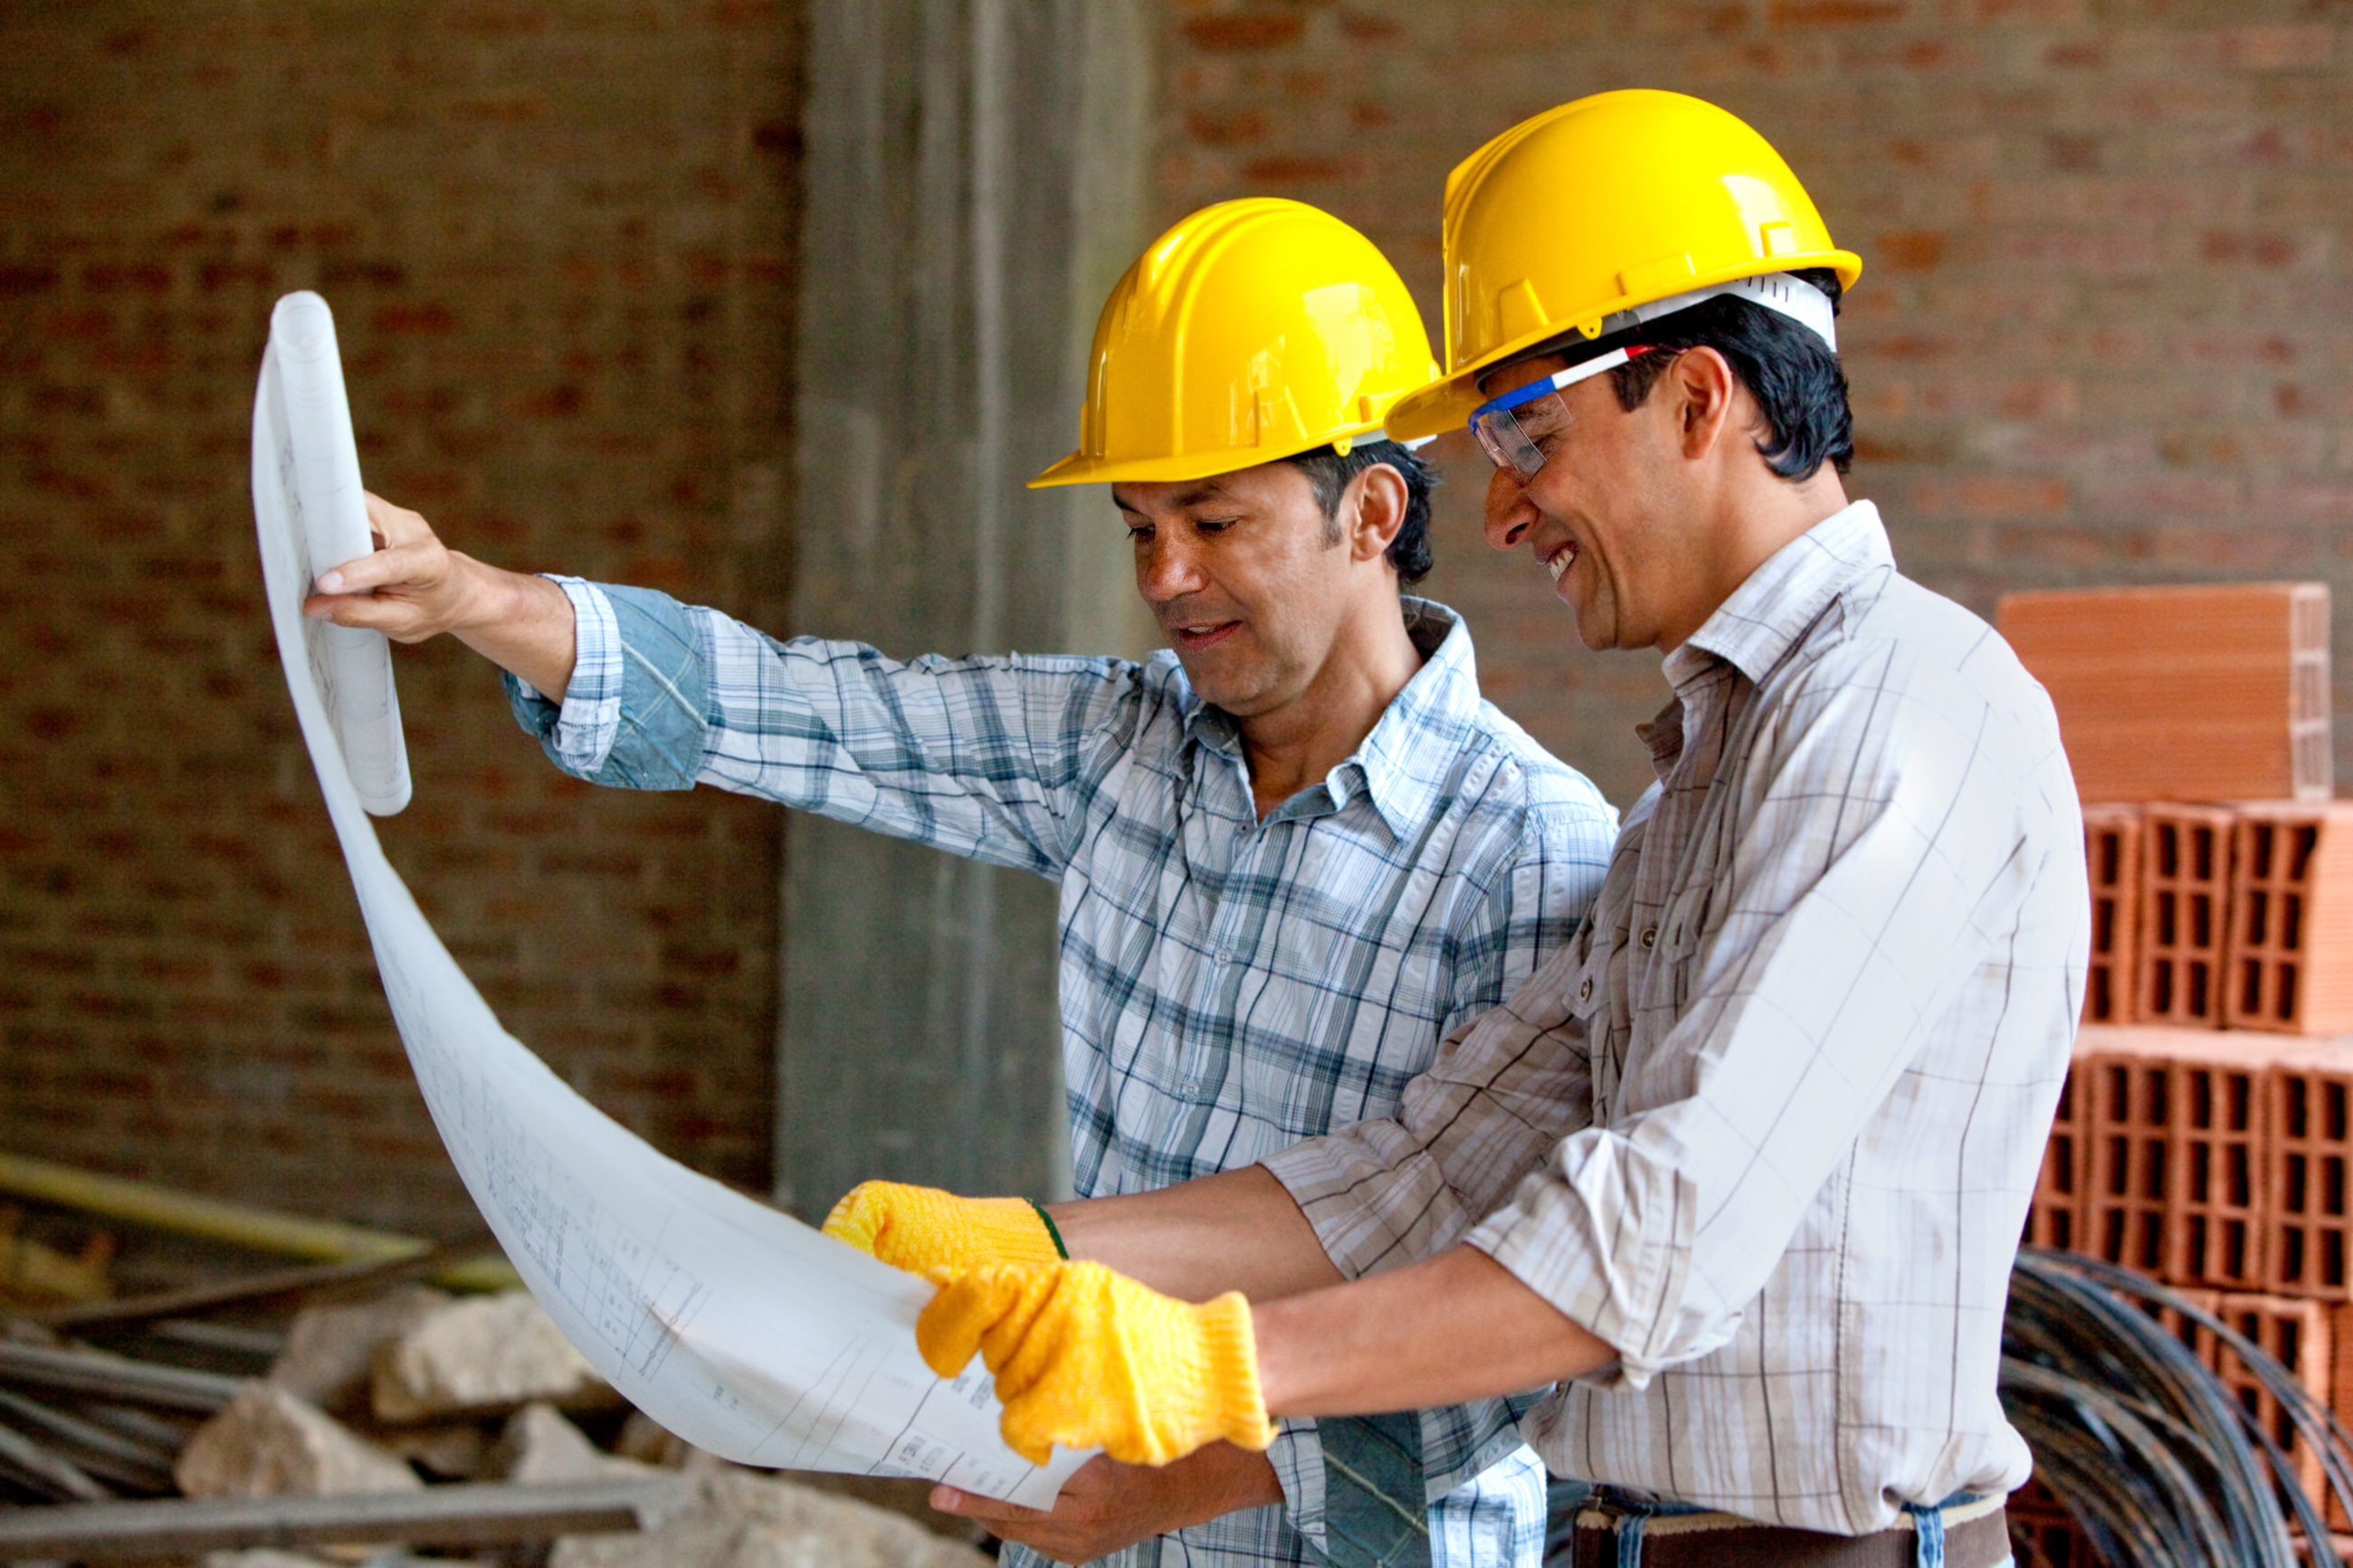 Usa business insurance has announced comprehensive general for Contractors needed to build a house